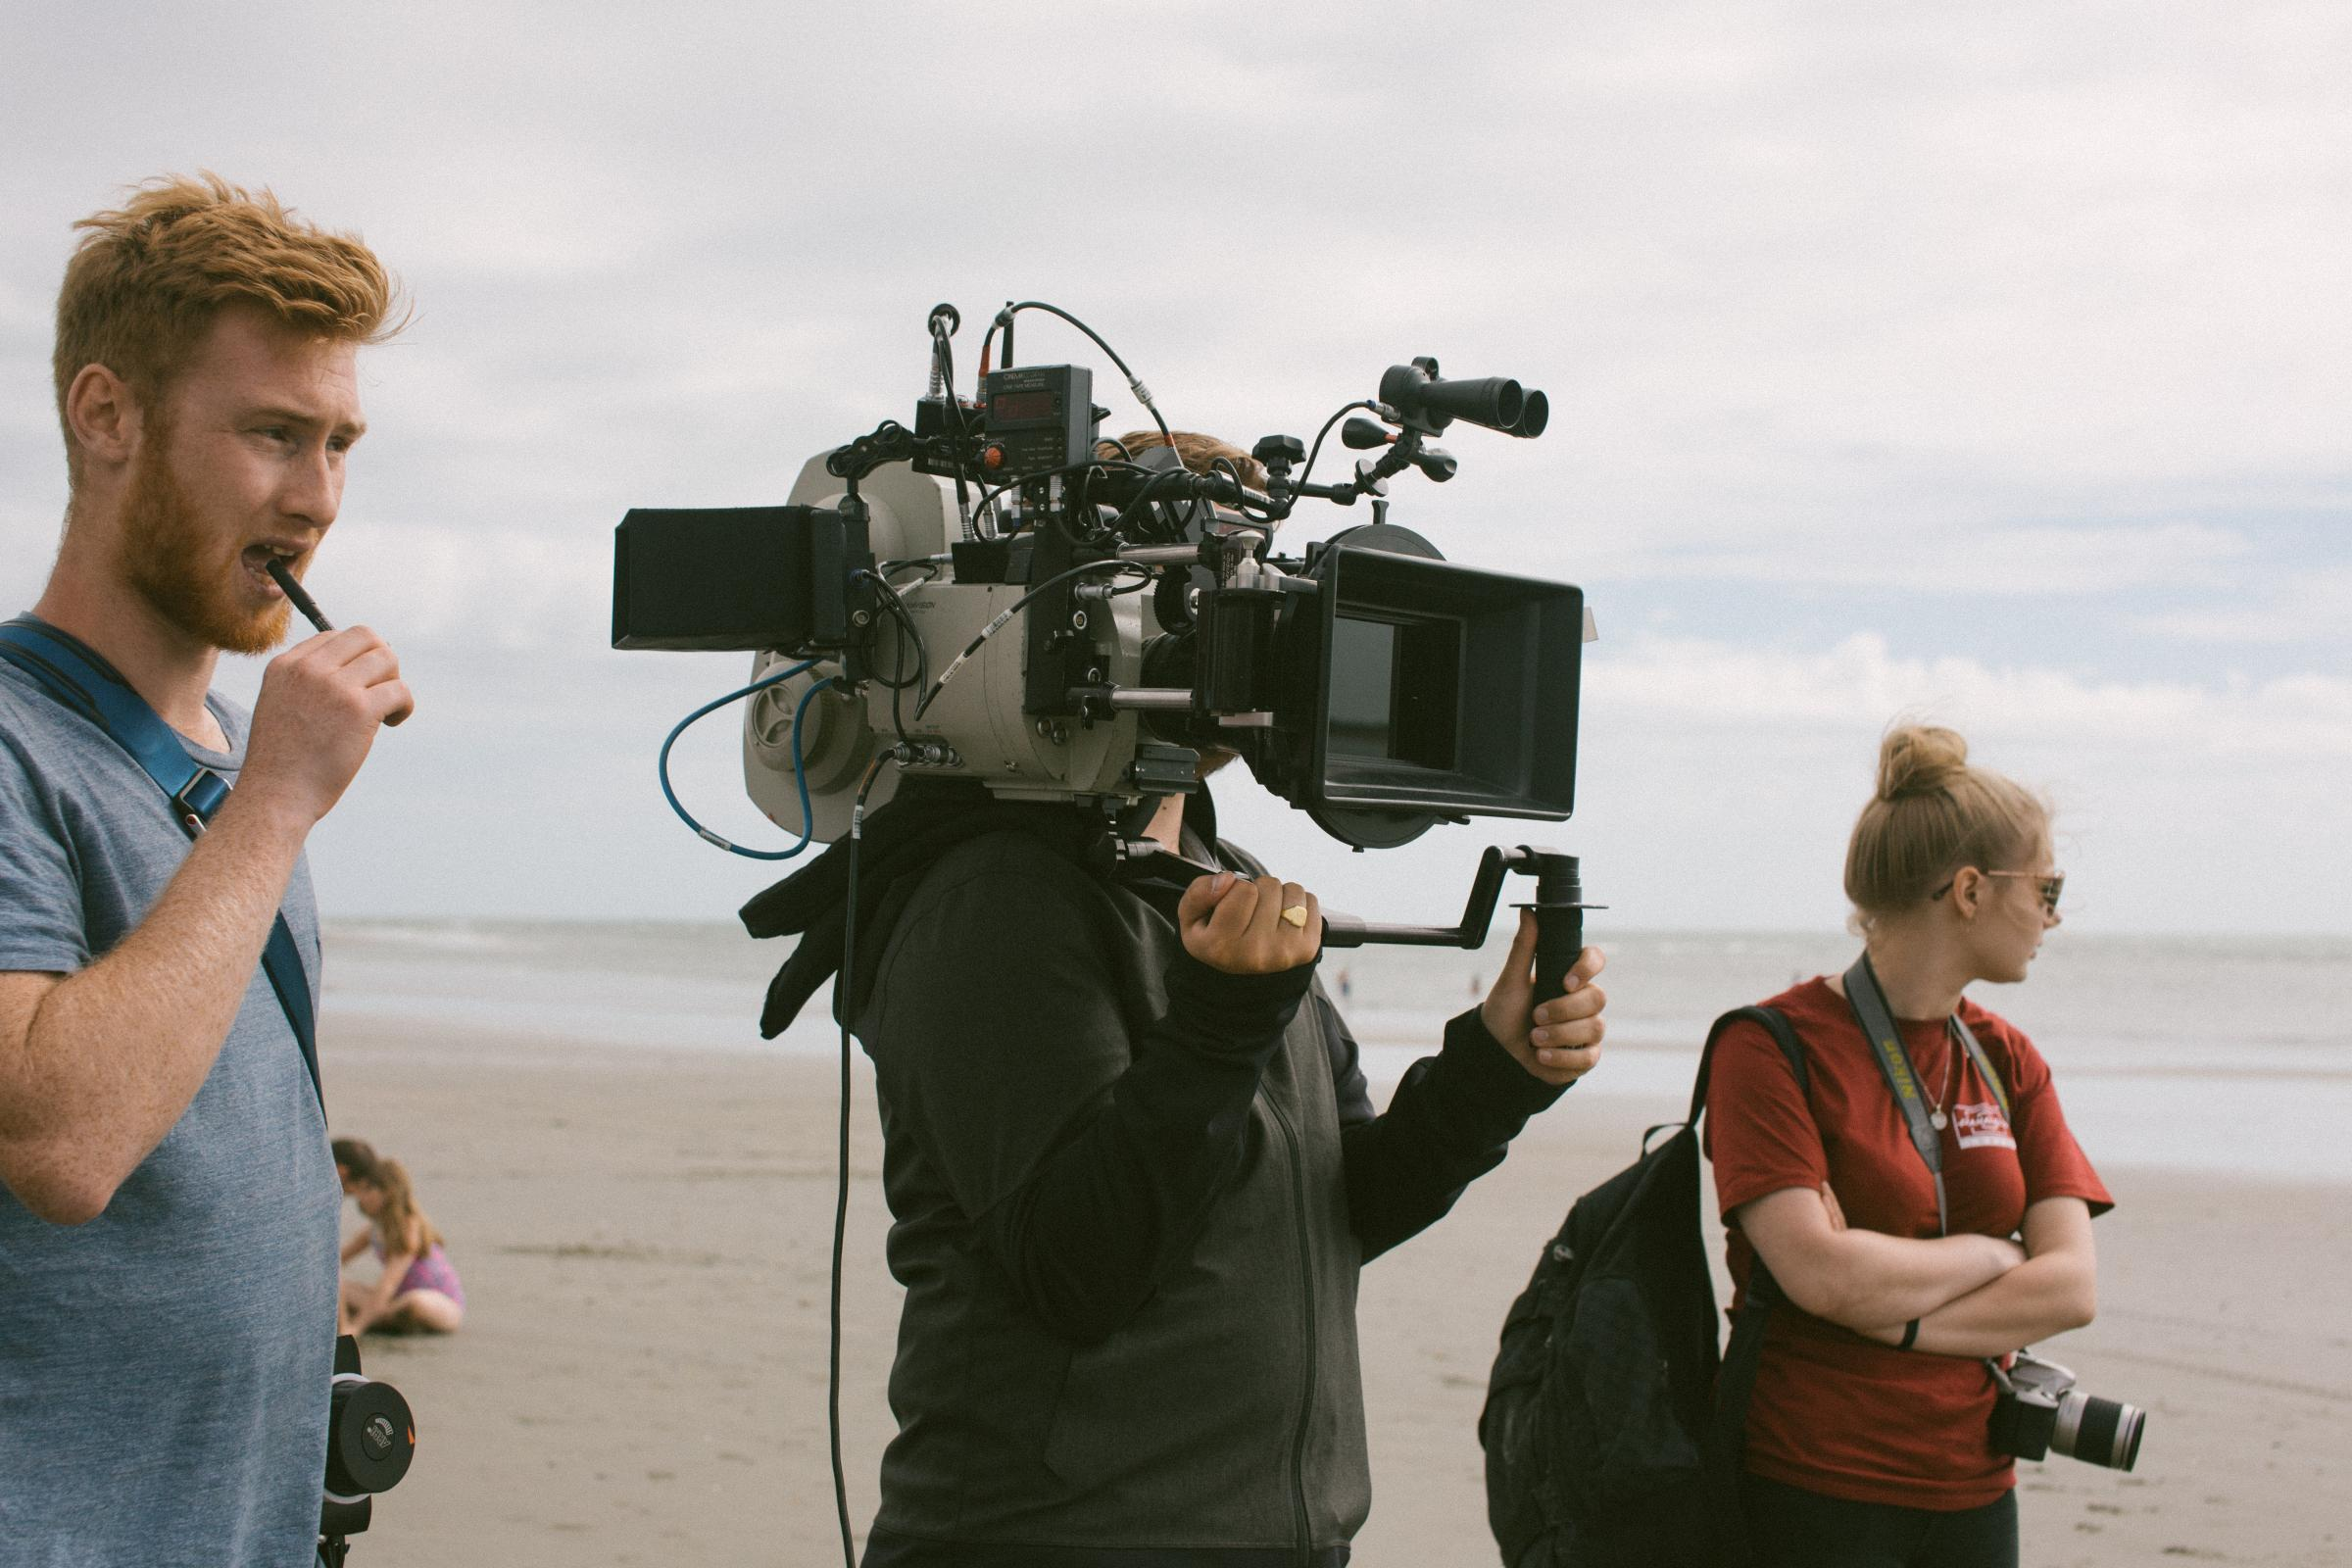 Young film-makers have less than a week to raise £25,000